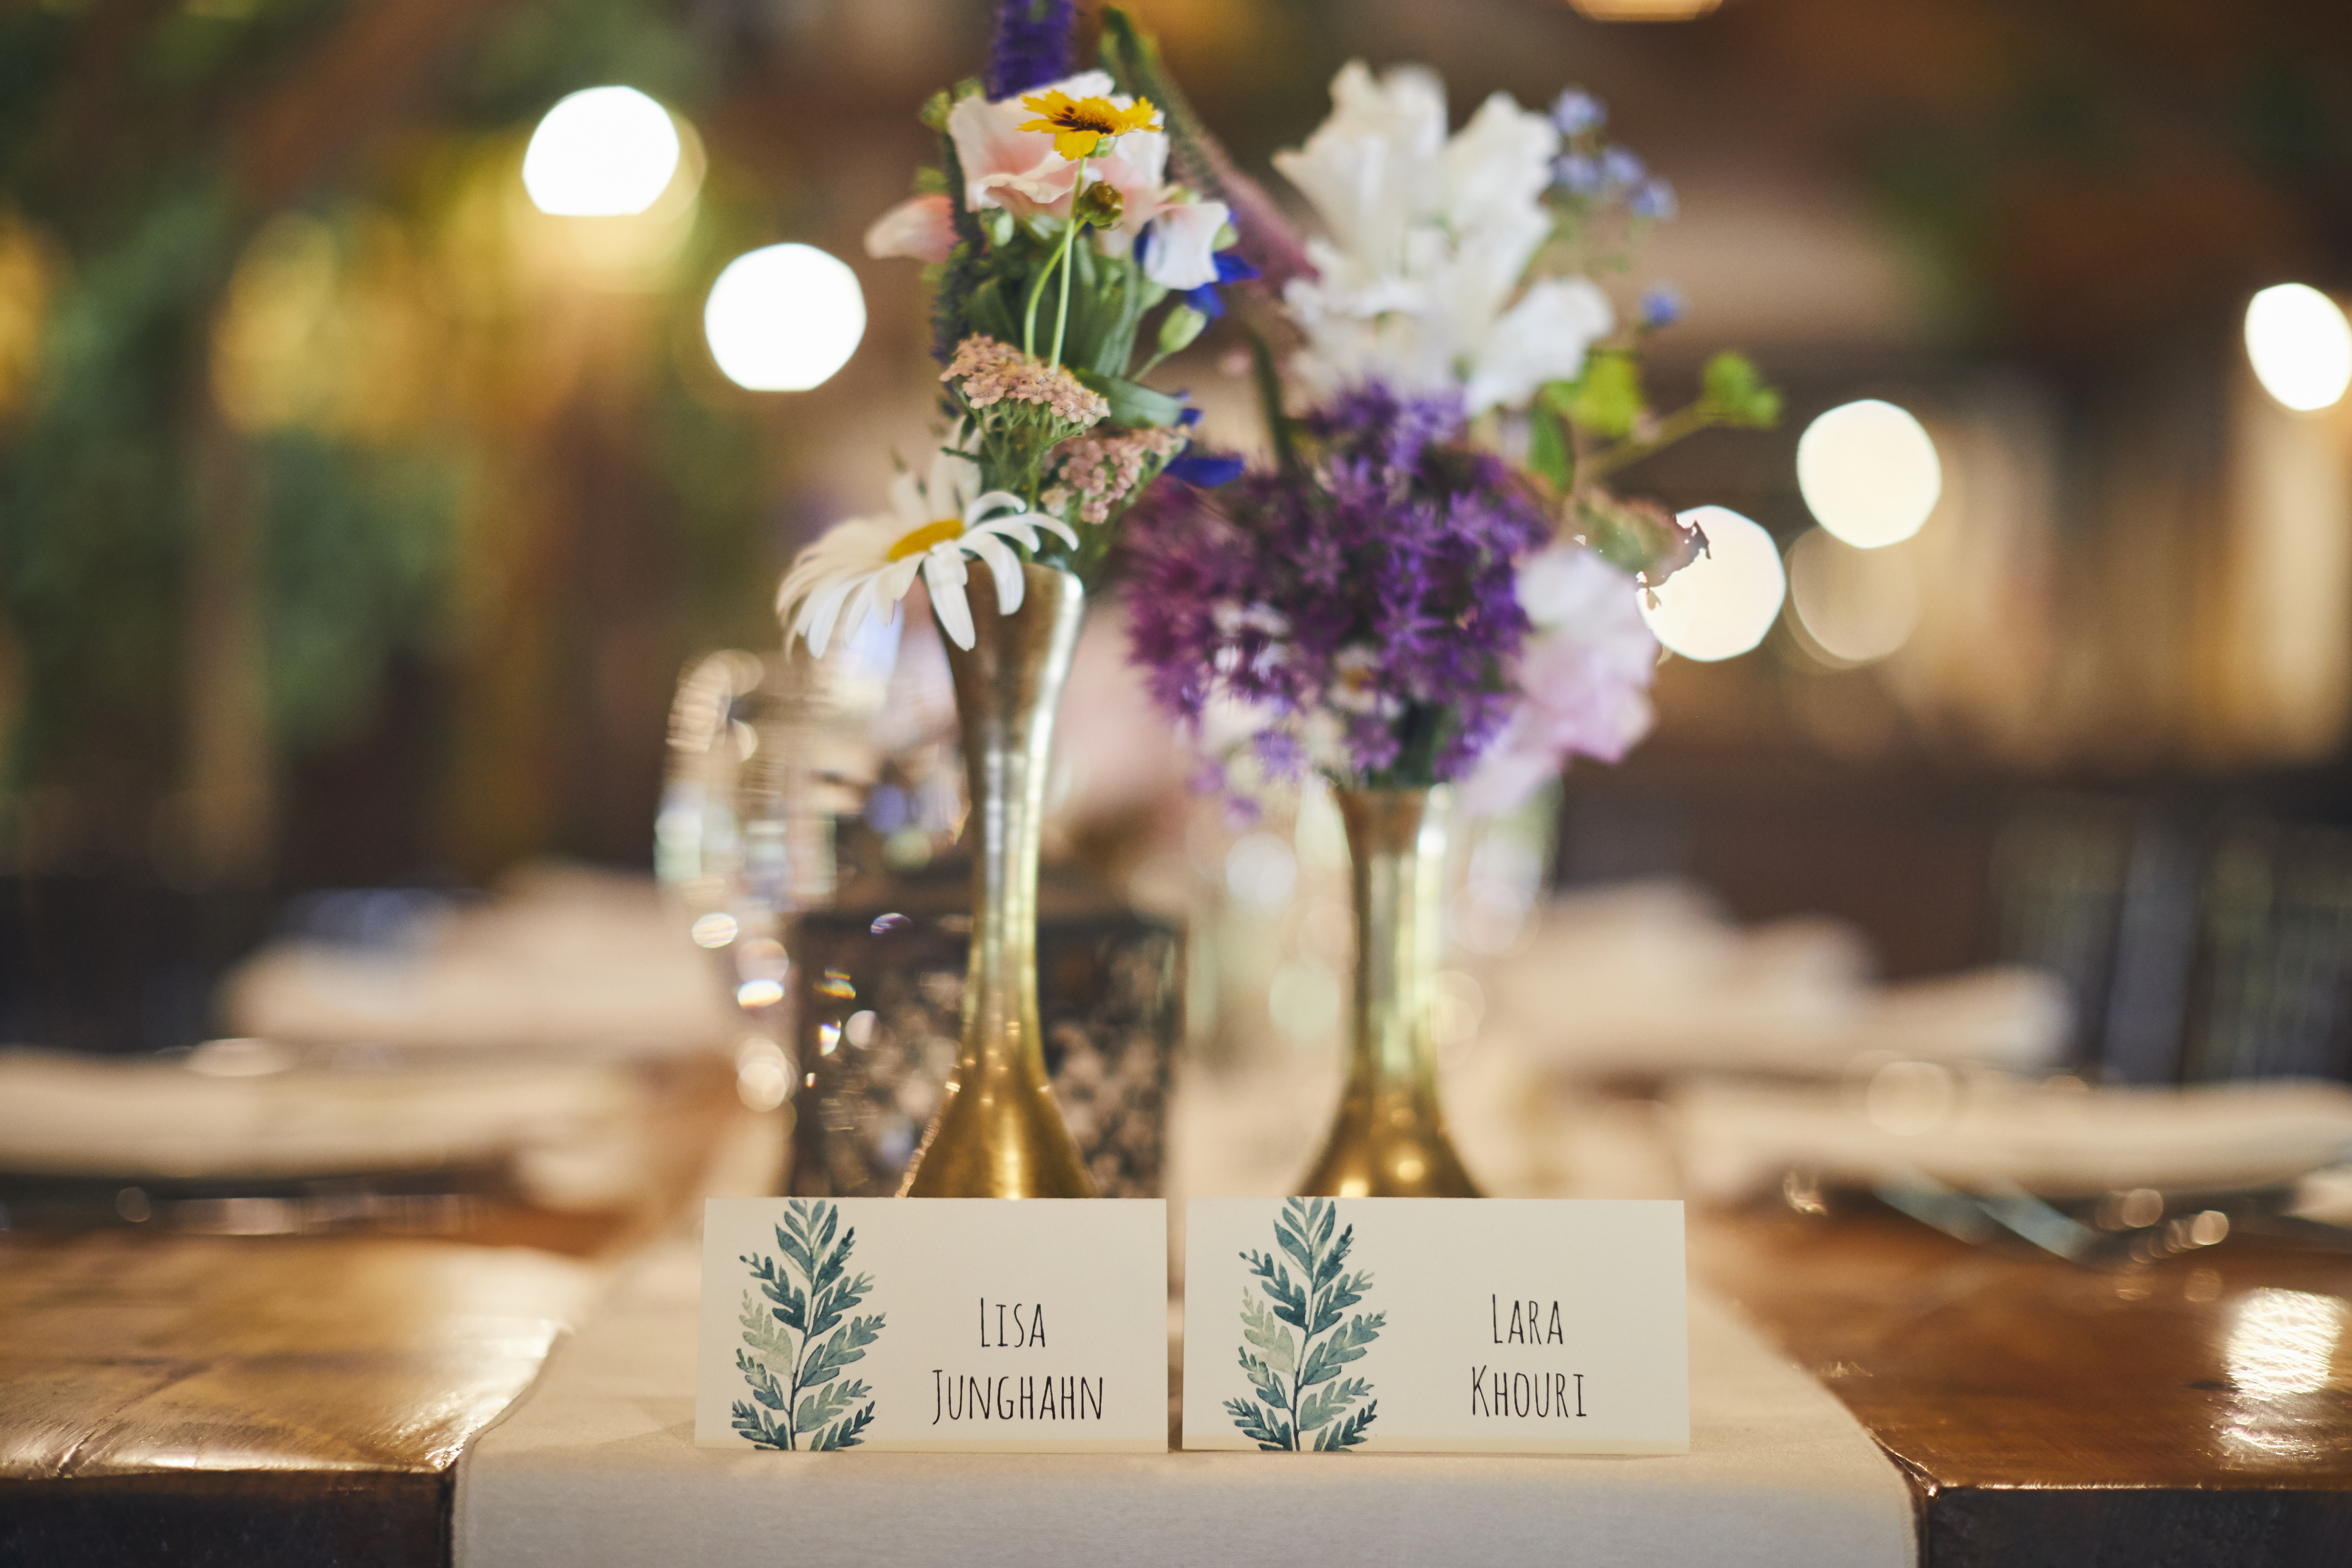 Seating cards with fern design under flower vases